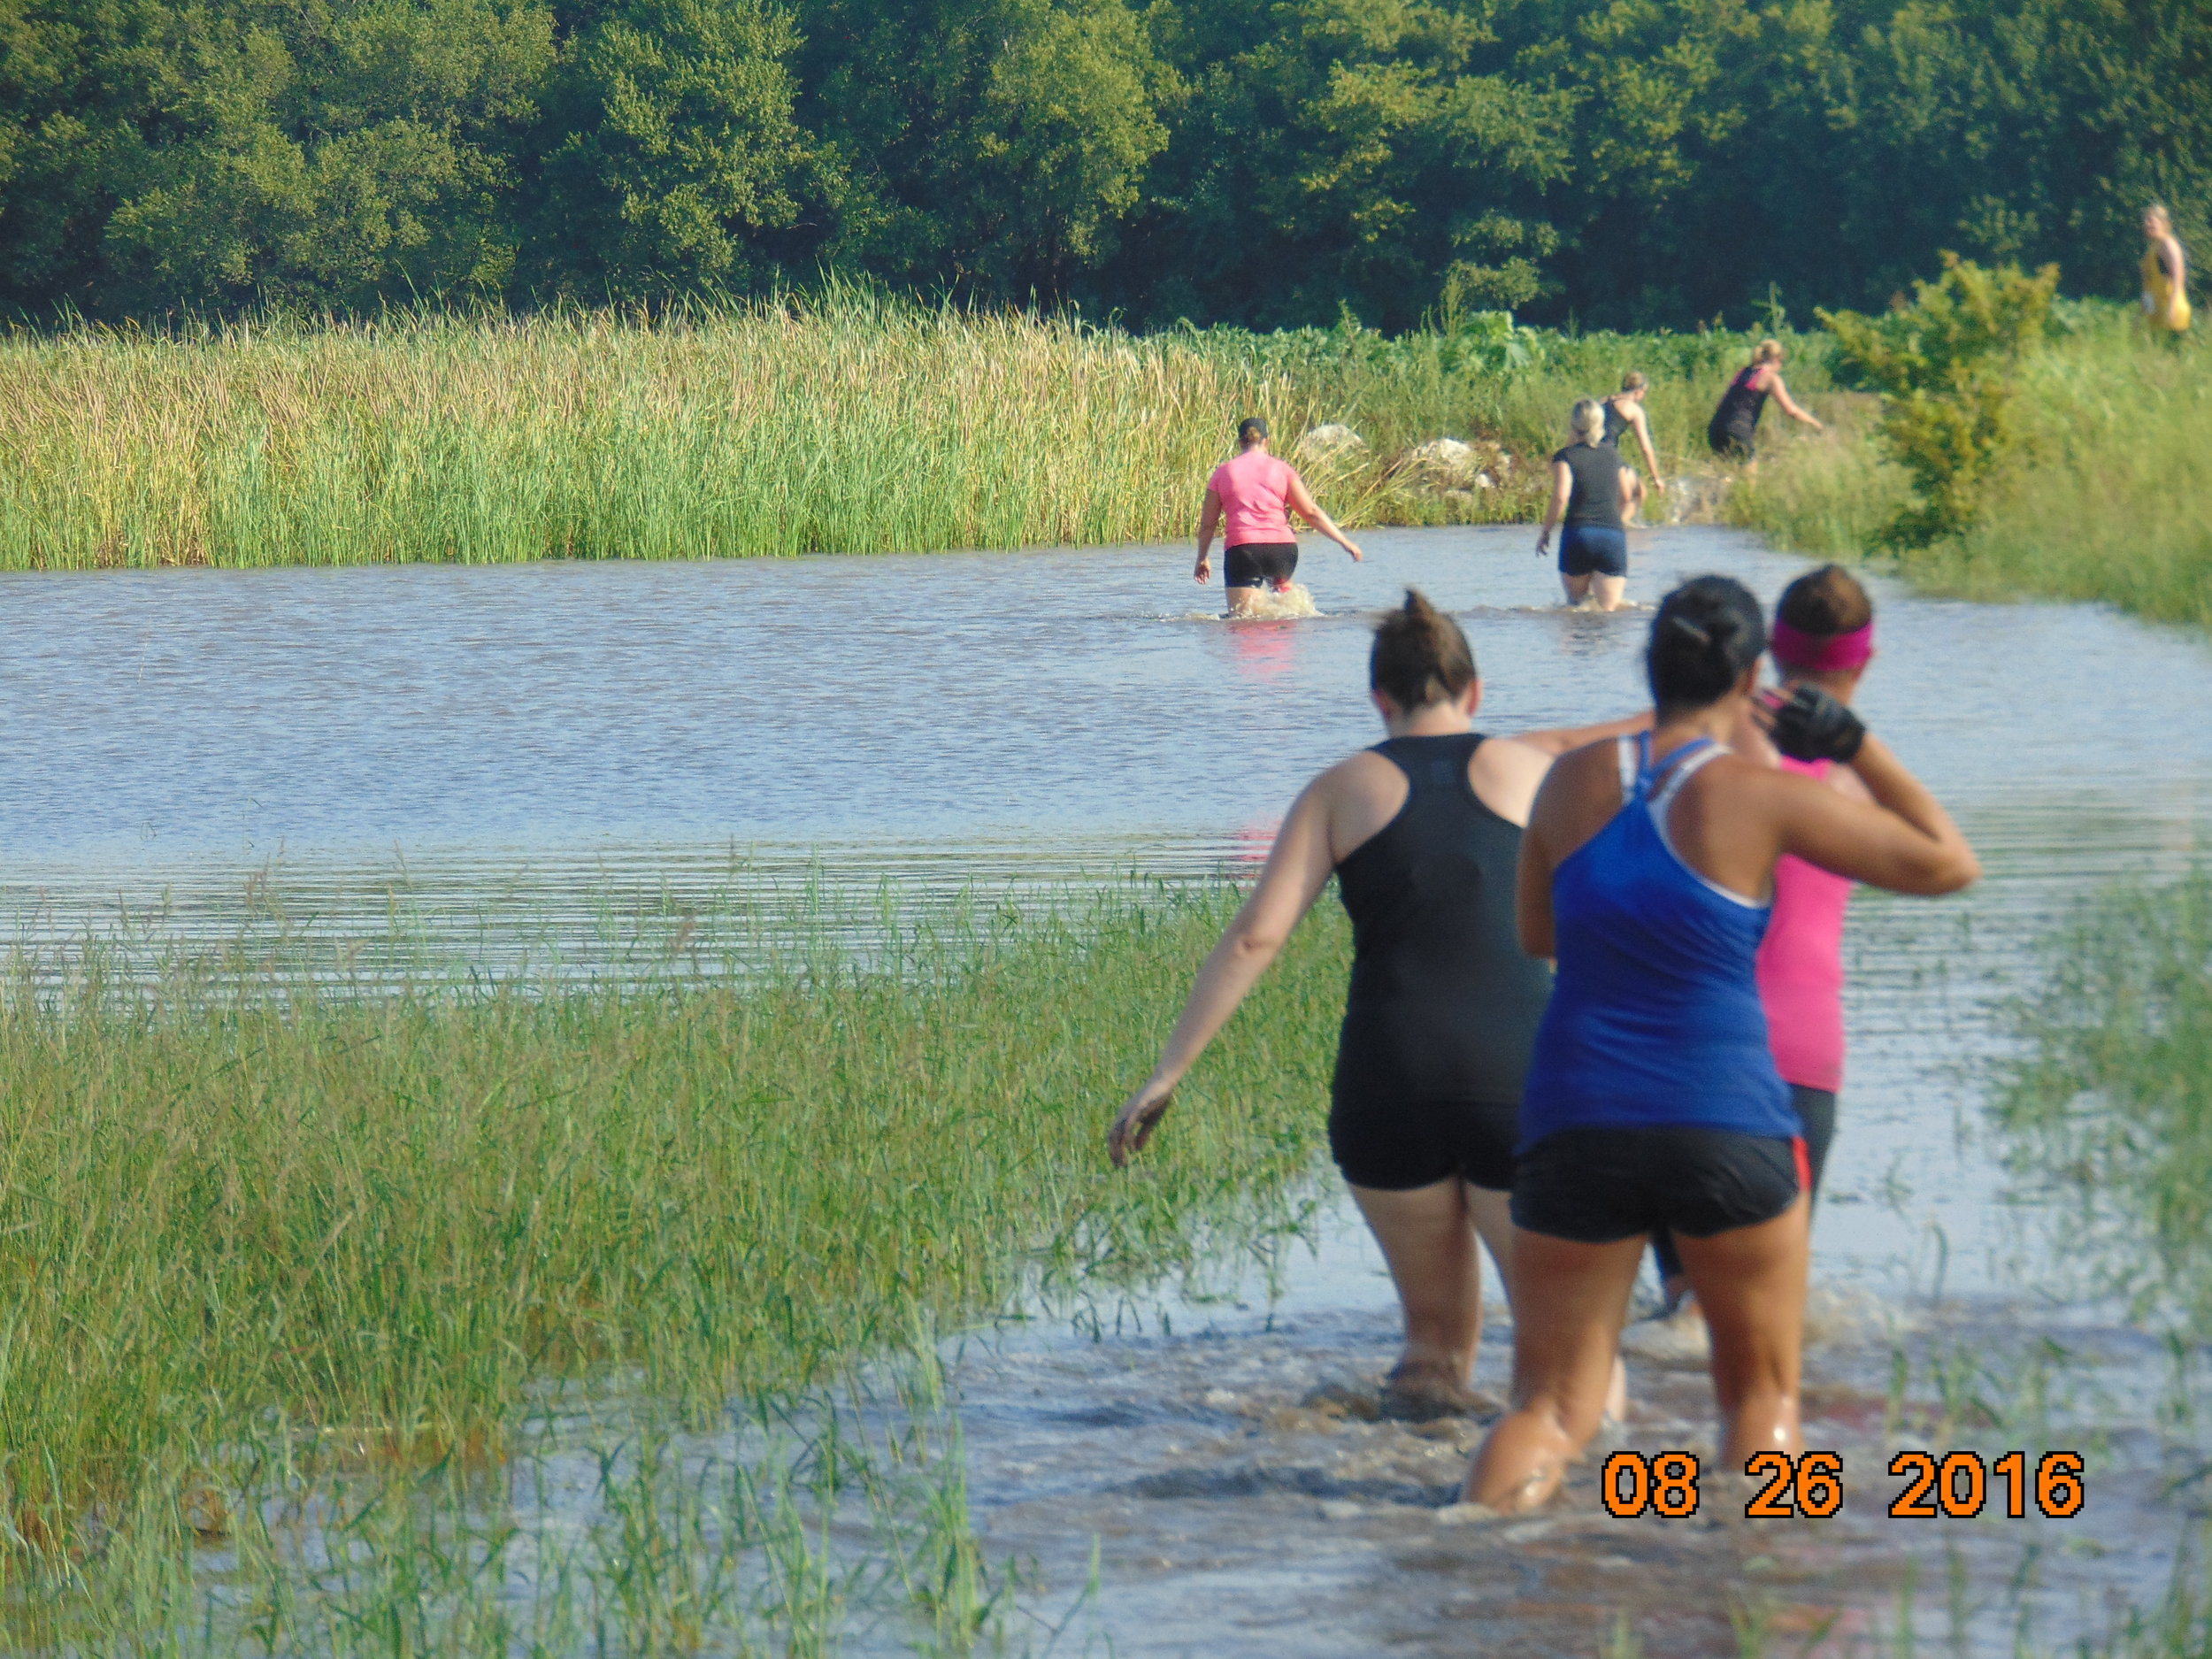 PA-Obstacle-Race-1_opt.jpg